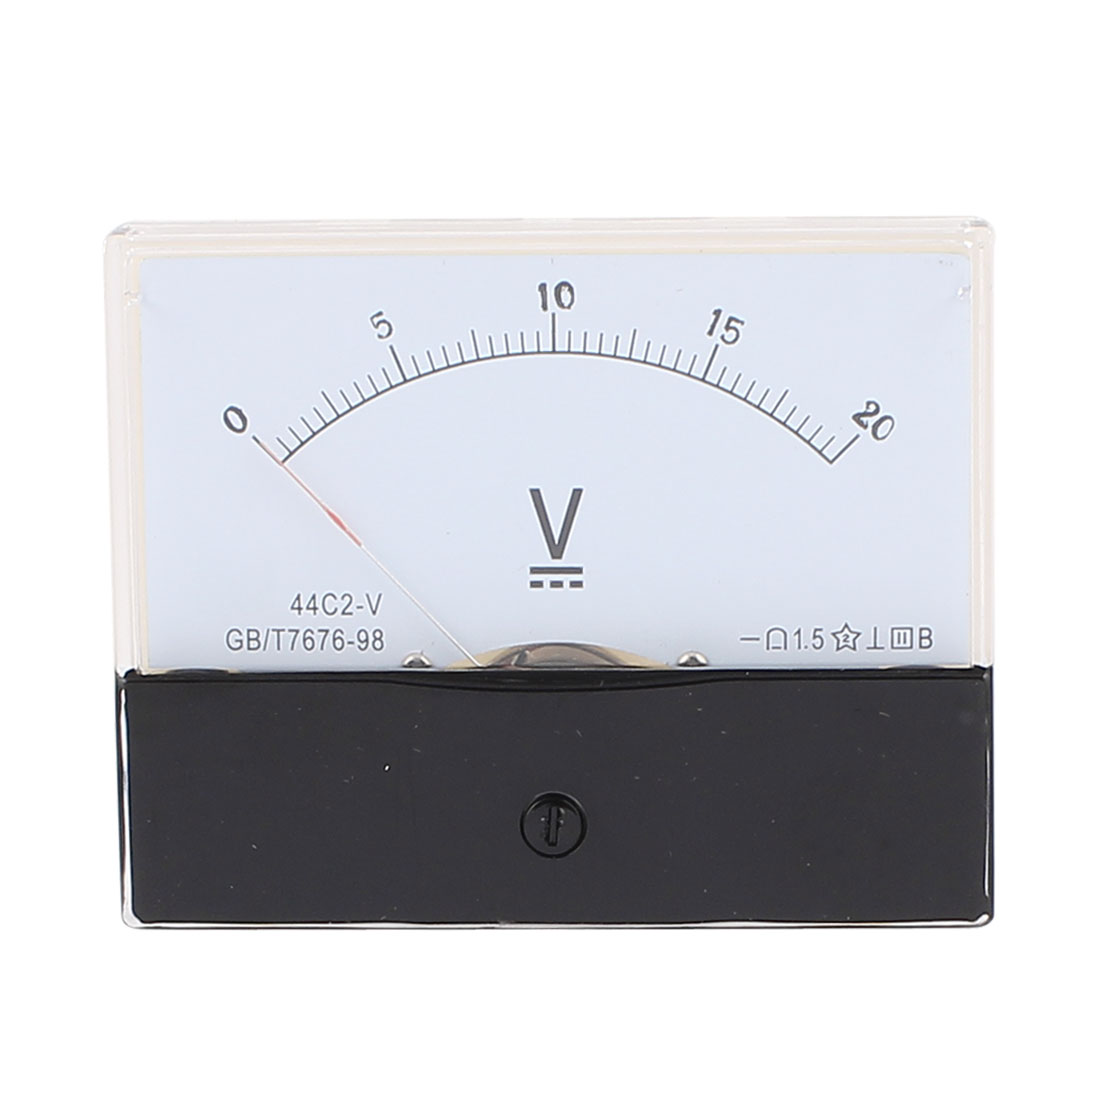 44C2 Pointer Needle DC 0-20V Volt Tester Panel Analog Voltmeter 100mm x 80mm